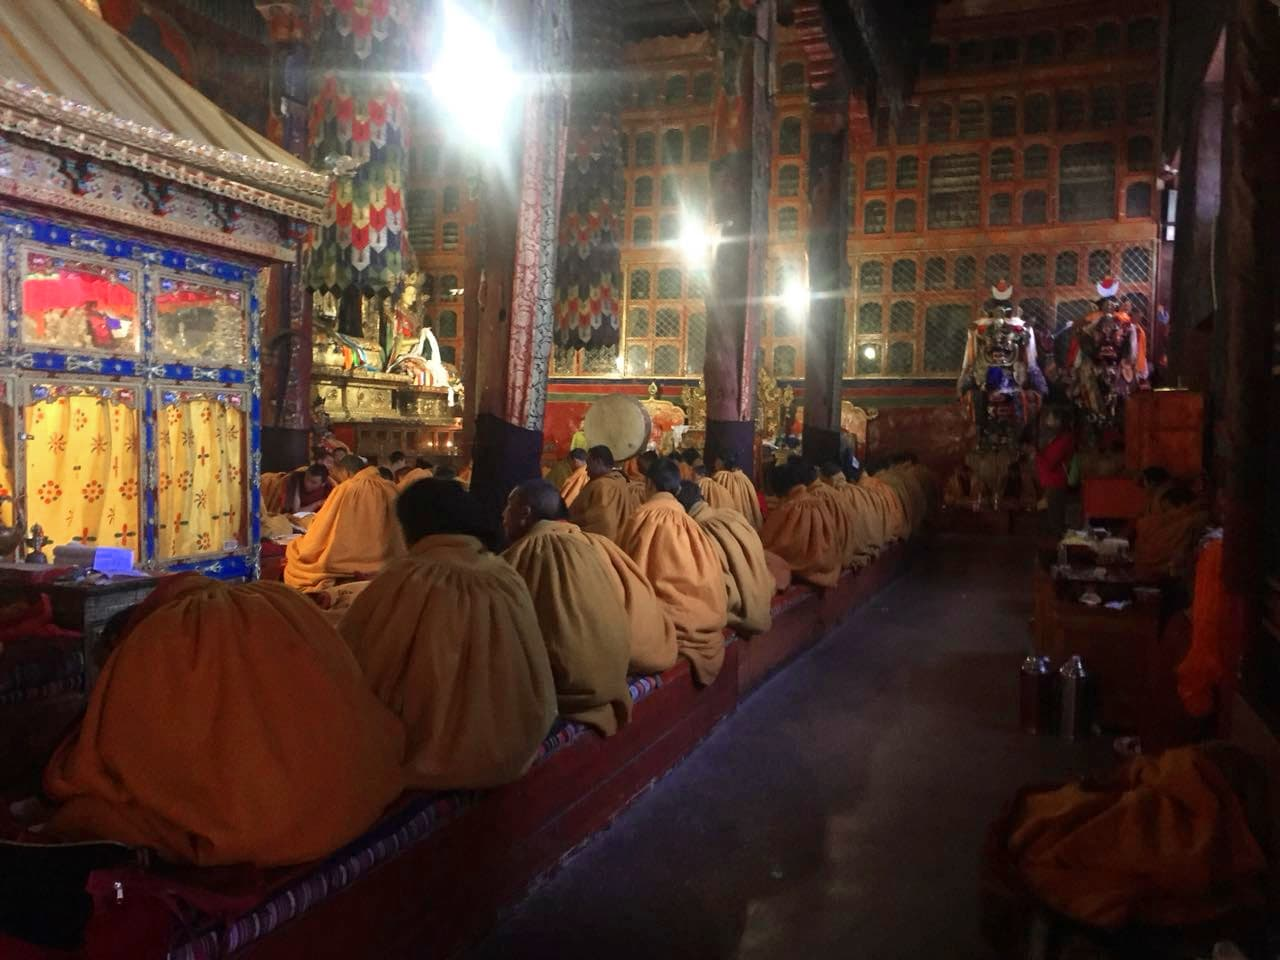 Monks chanting in Sakya monastery in Tibet